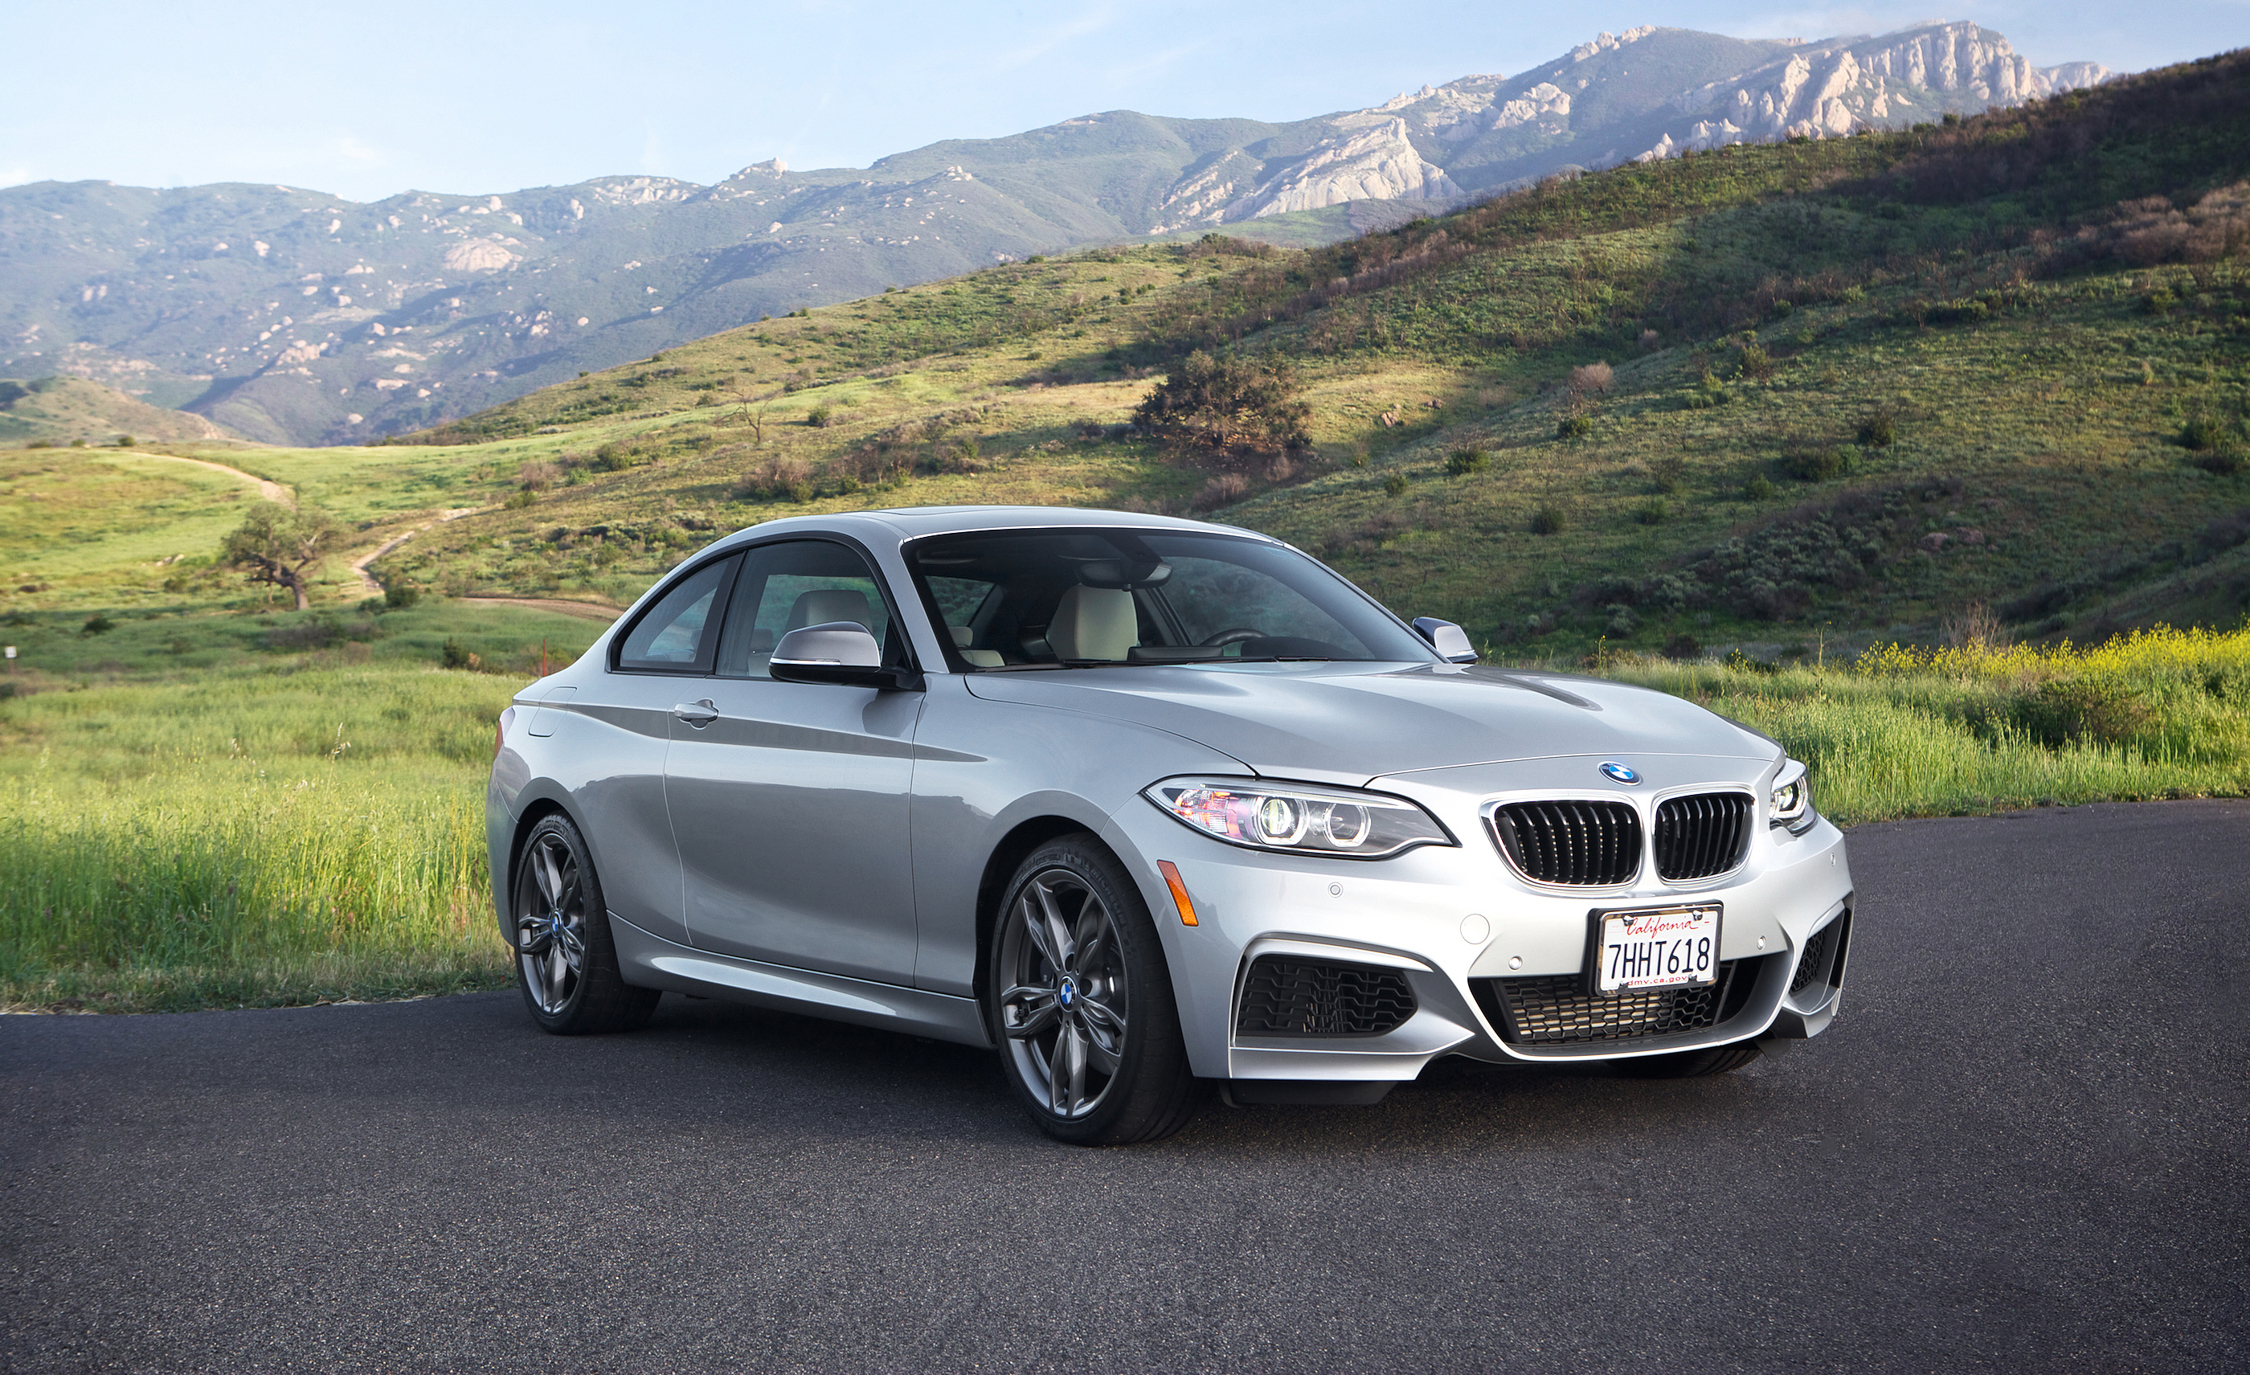 2015 BMW M235i xDrive Exterior Front and Side